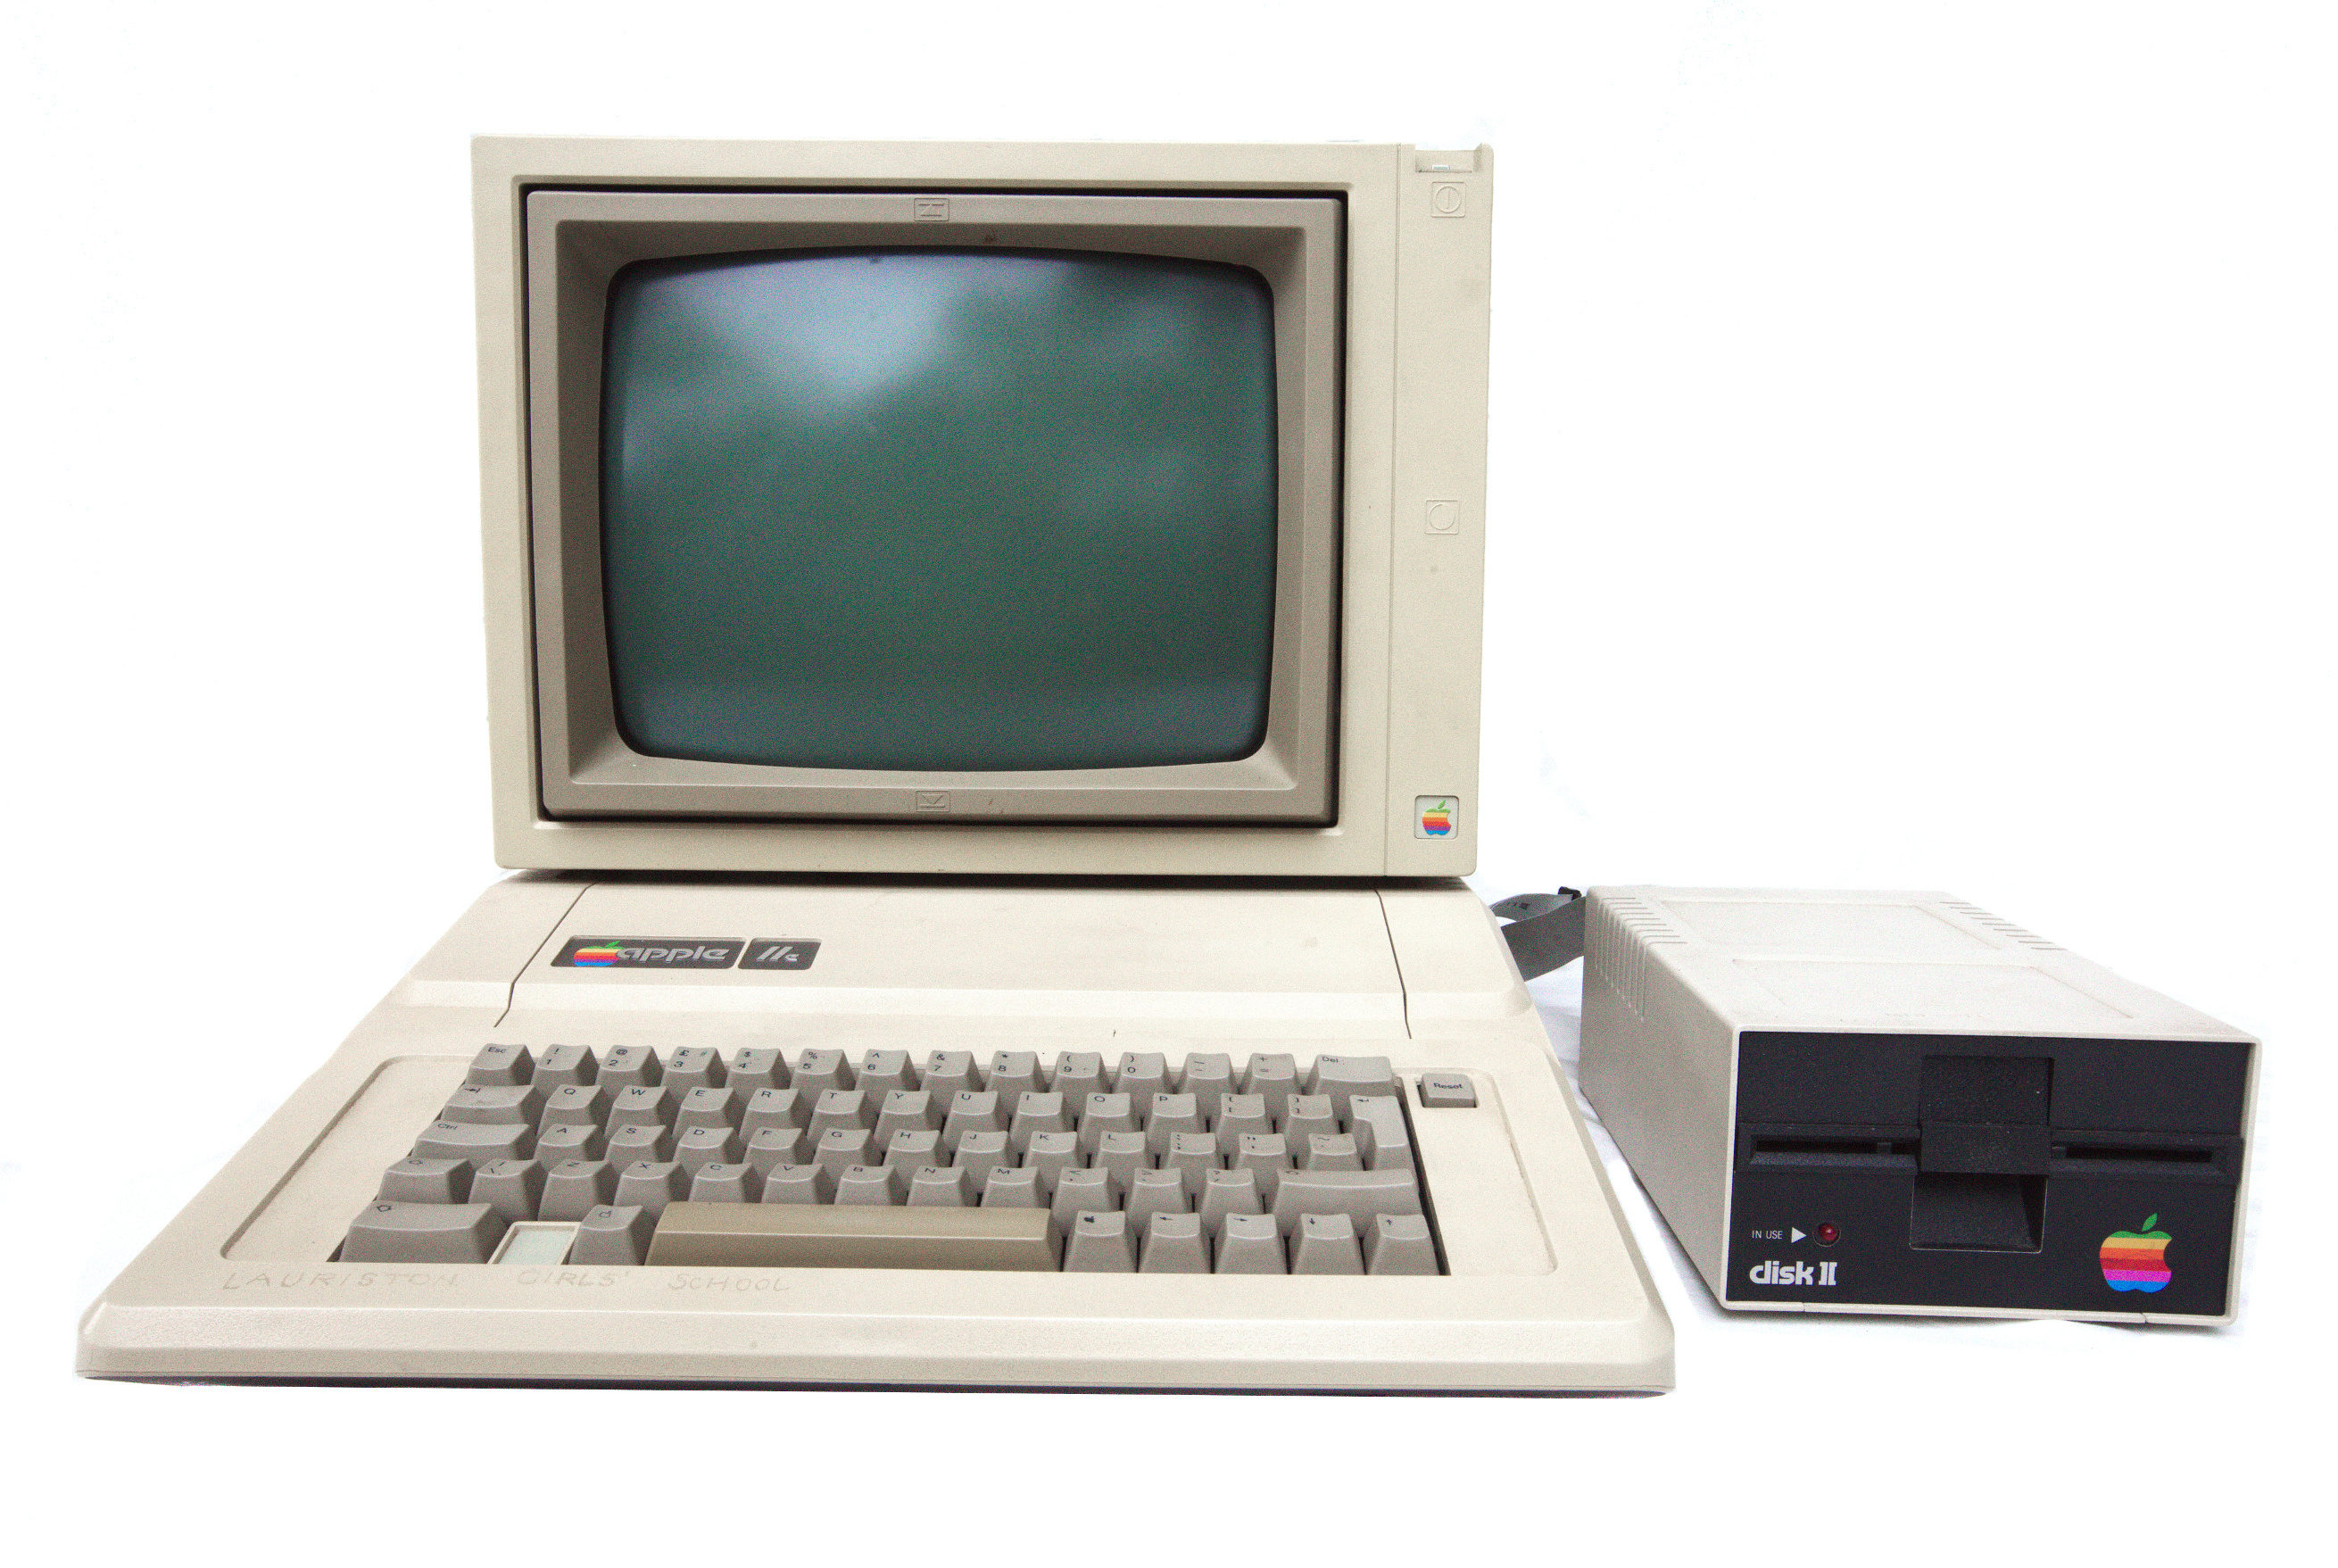 De Apple IIe